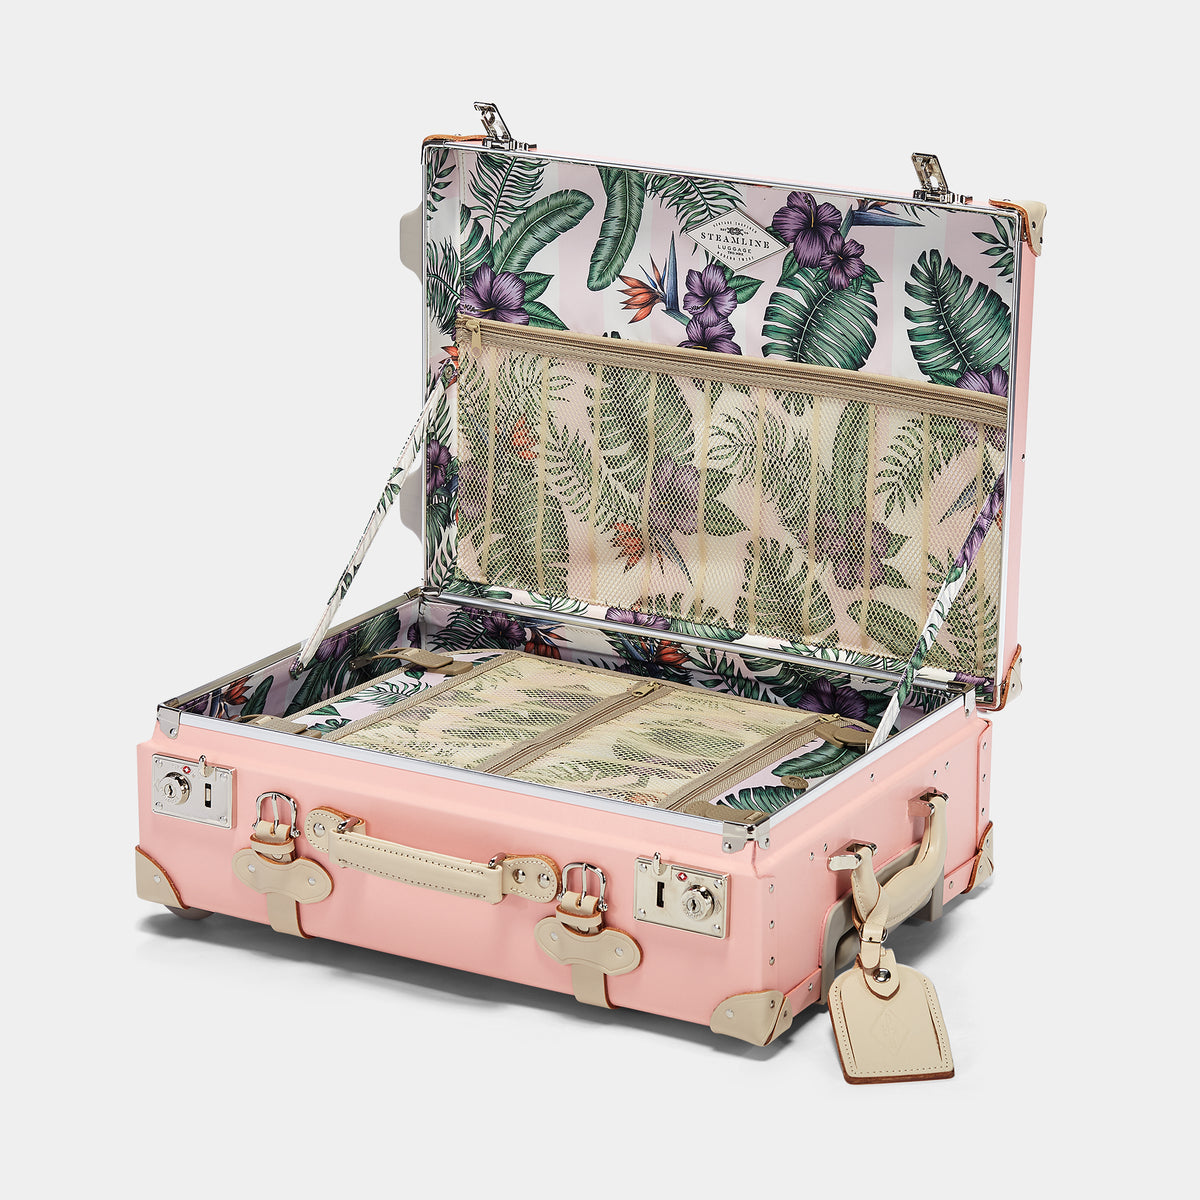 The Botanist Carryon in Pink - Vintage-Inspired Carry On Case - Interior